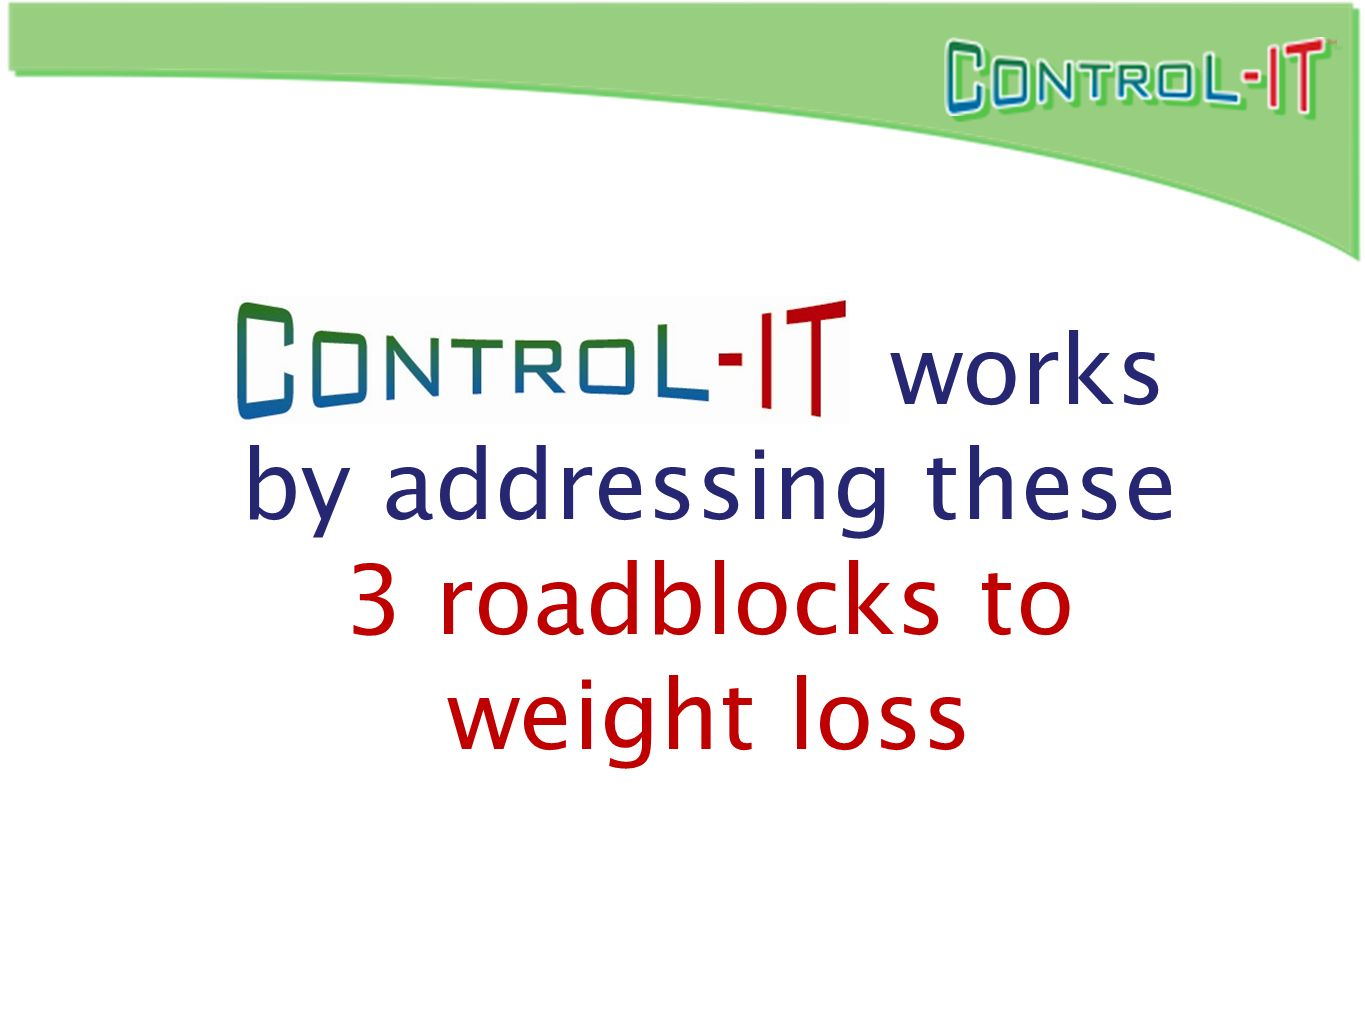 works by addressing these 3 roadblocks to weight loss